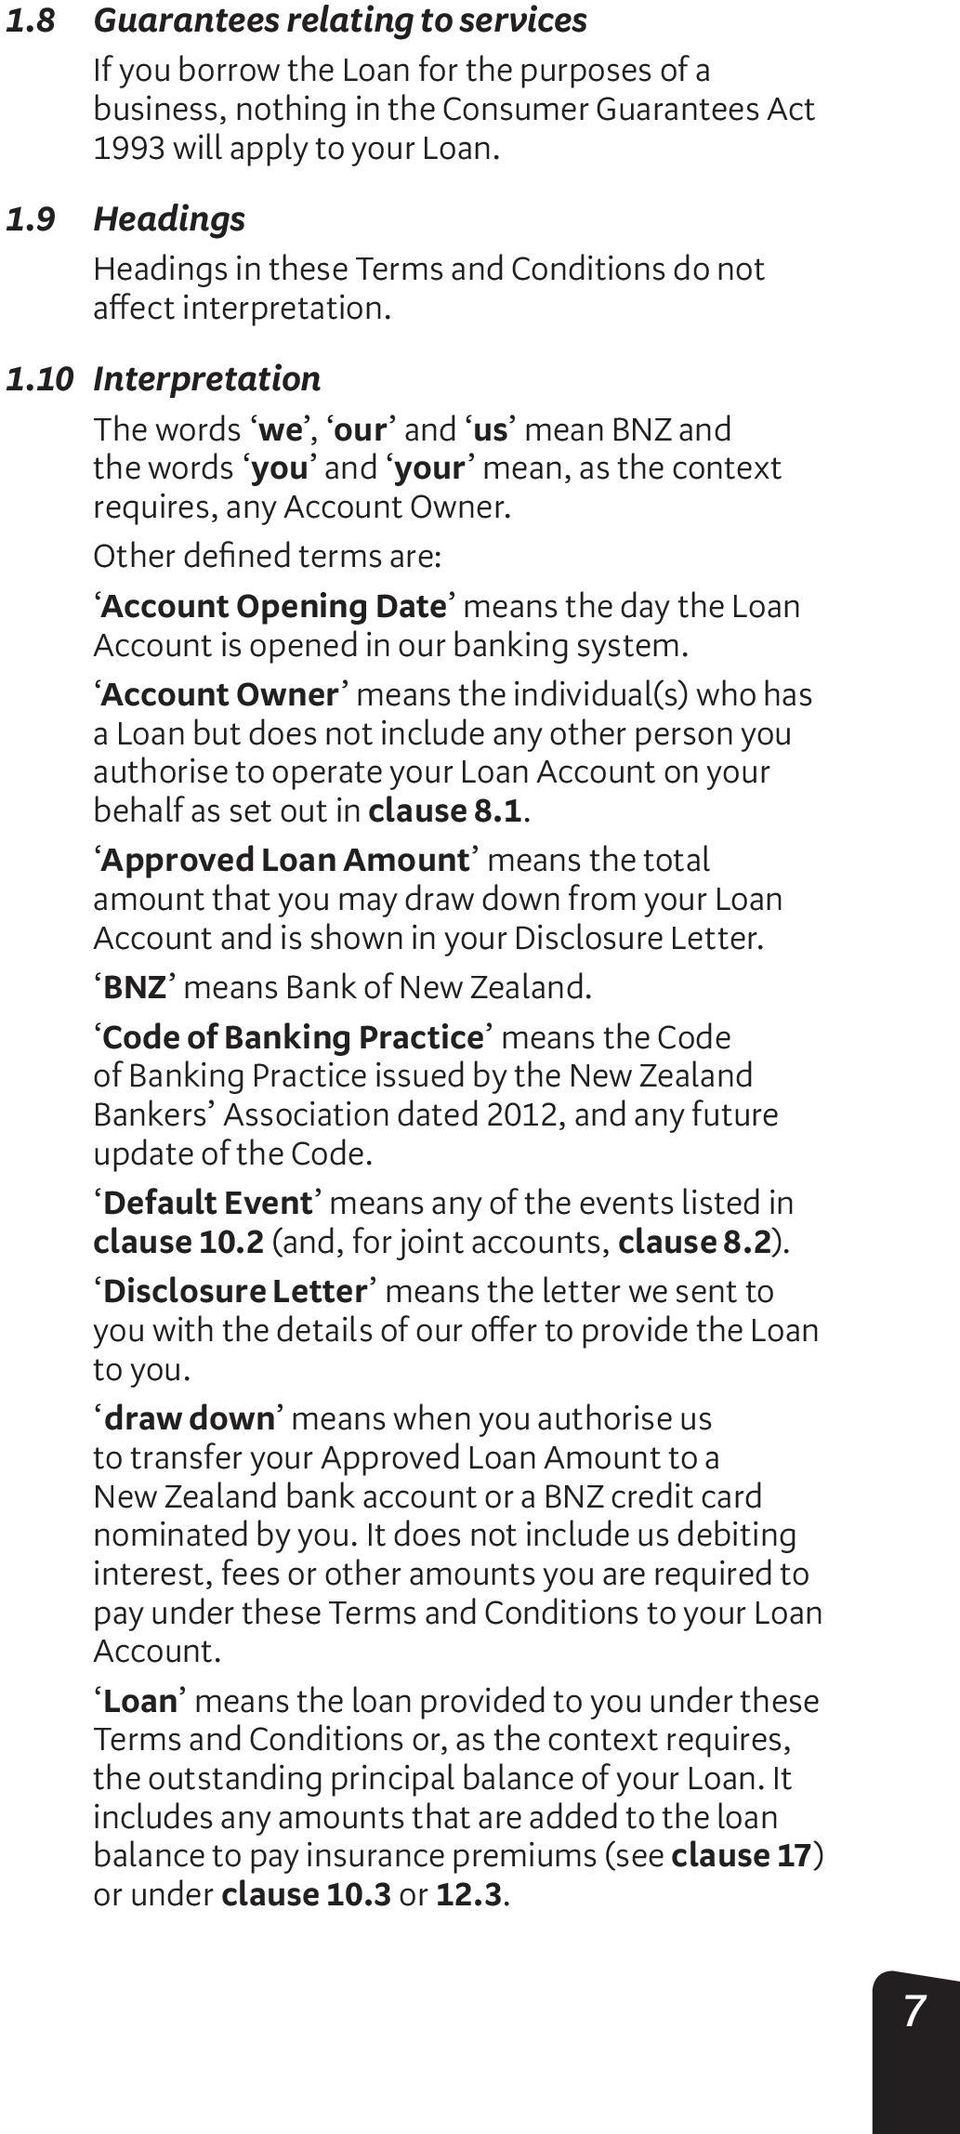 Other defined terms are: Account Opening Date means the day the Loan Account is opened in our banking system.